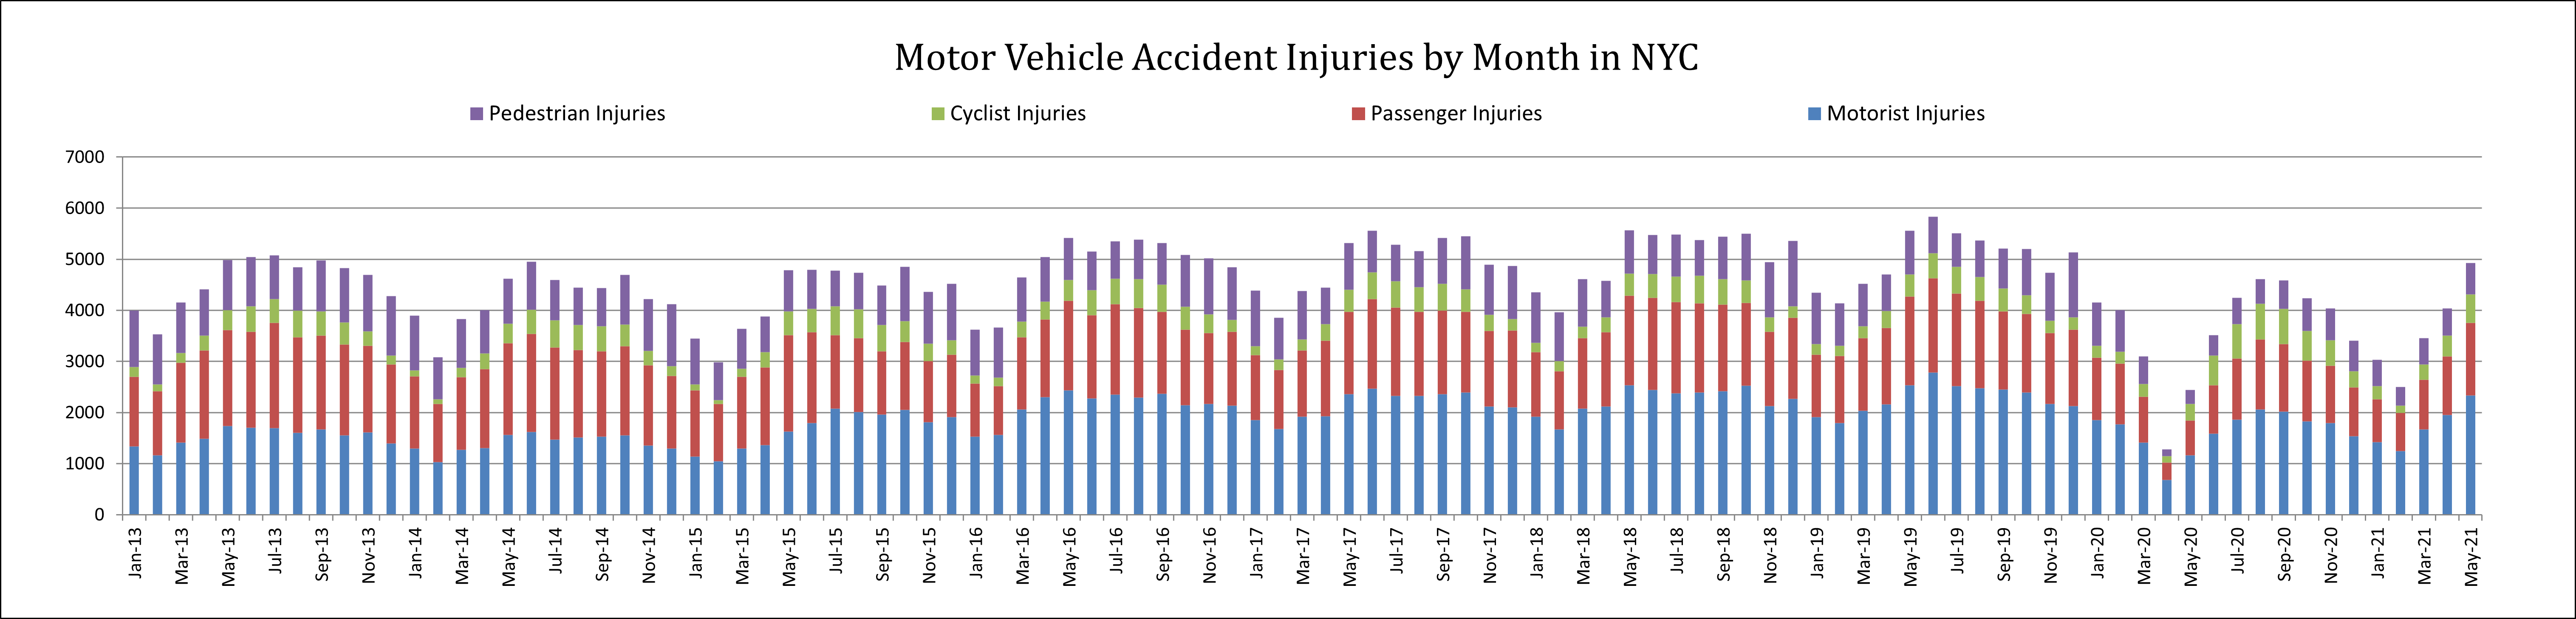 auto accident injuries by category Ma